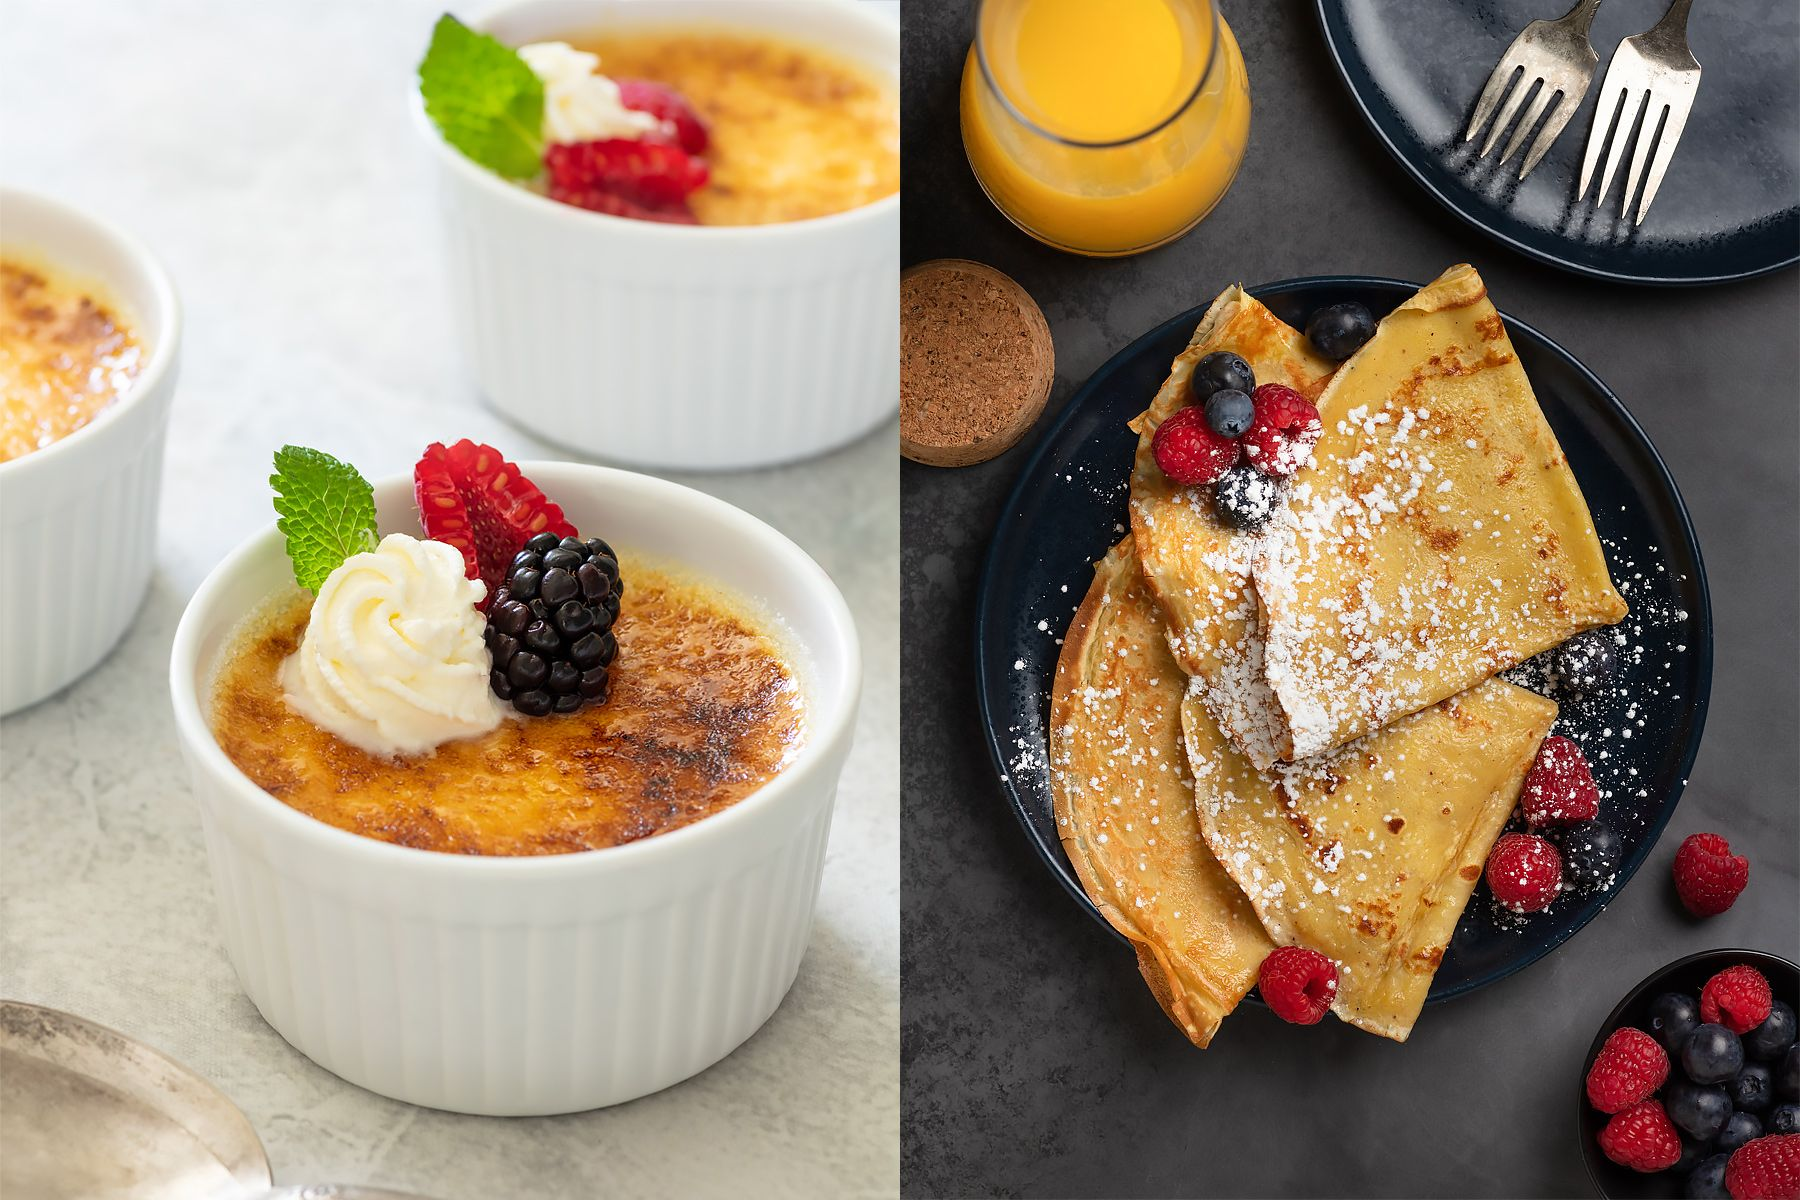 CreamBrulee_FrenchCrapes.jpg